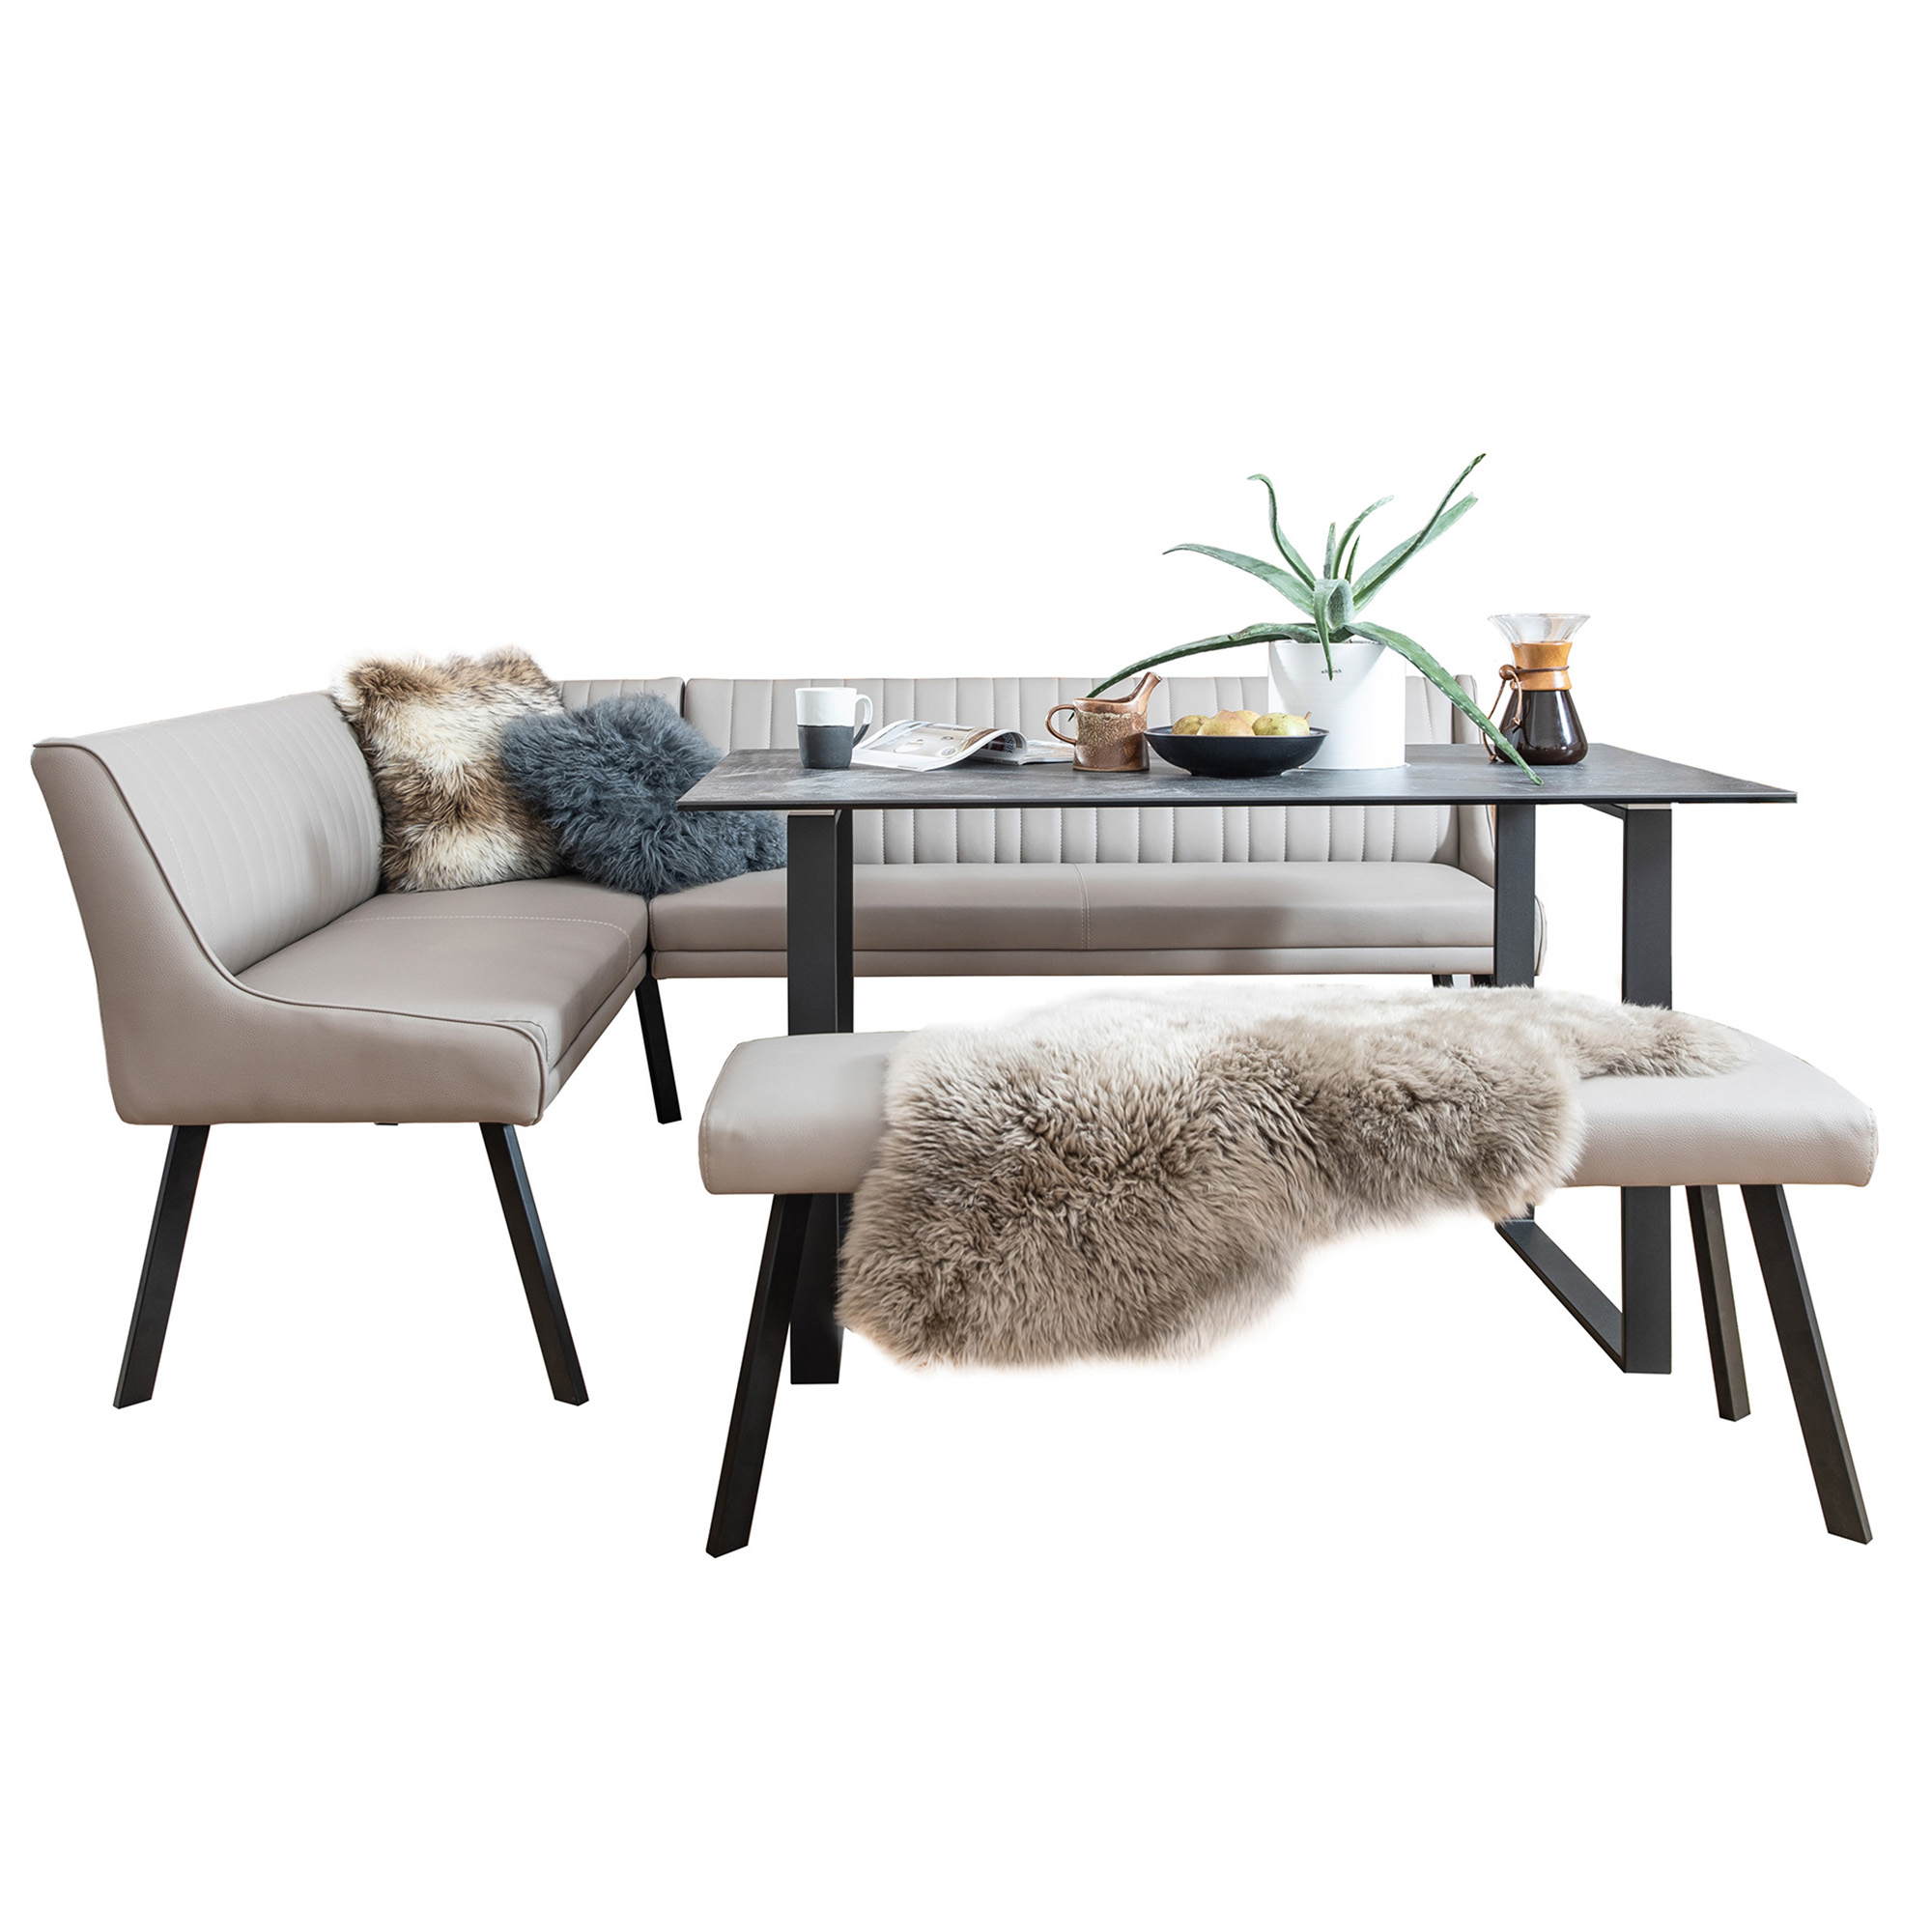 Livorno Dining Set Comprising Of 135cm Dining Table Rhf Corner Bench In Taupe Bench In Taupe Dining Table Sets Fishpools